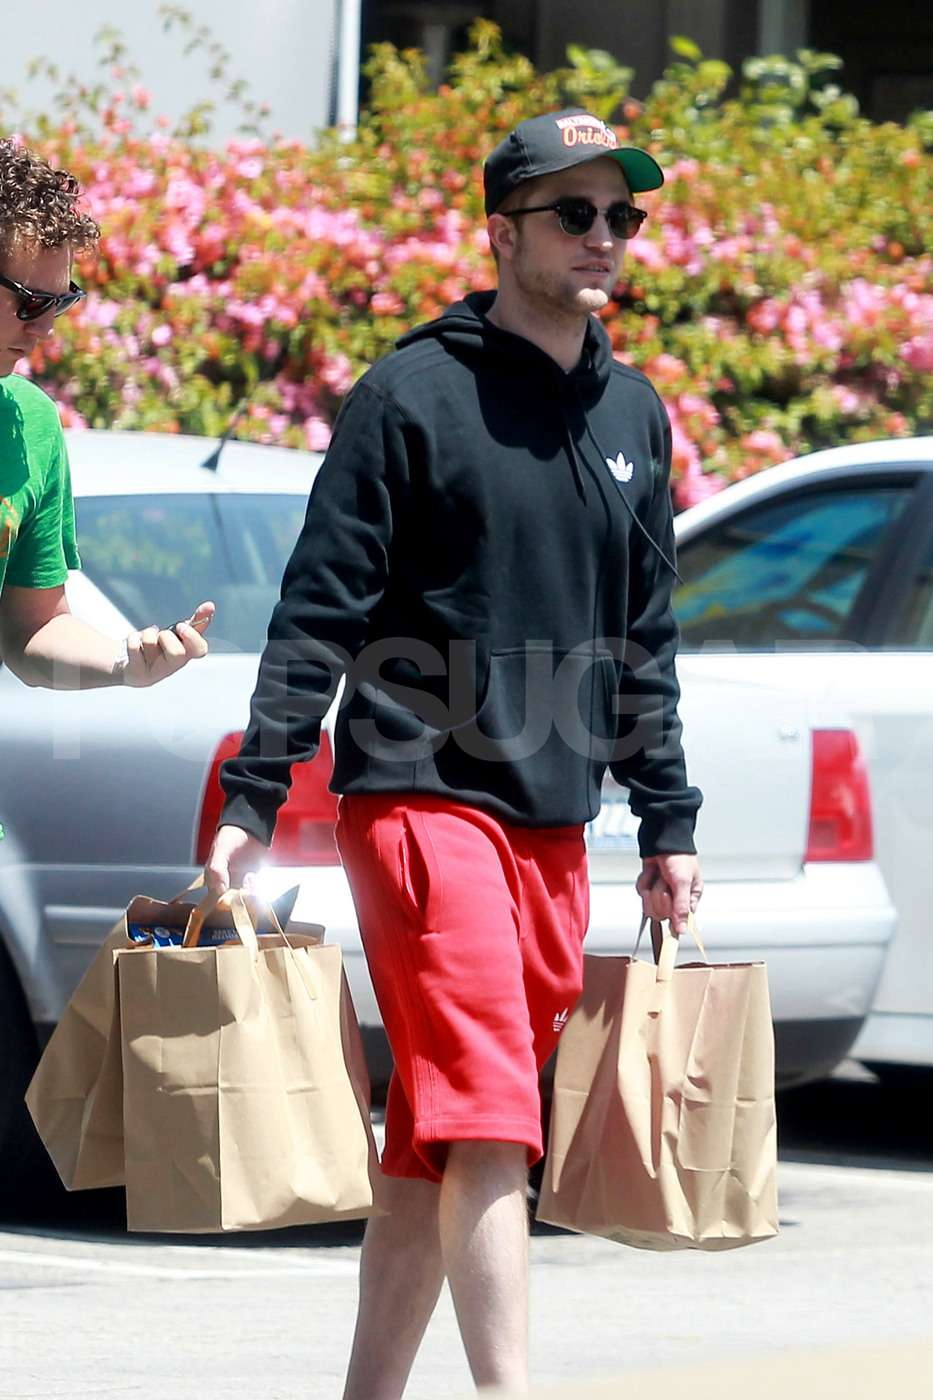 Robert Pattinson Steps Out in Sweats and Sandals to Grocery Shop With a Buddy